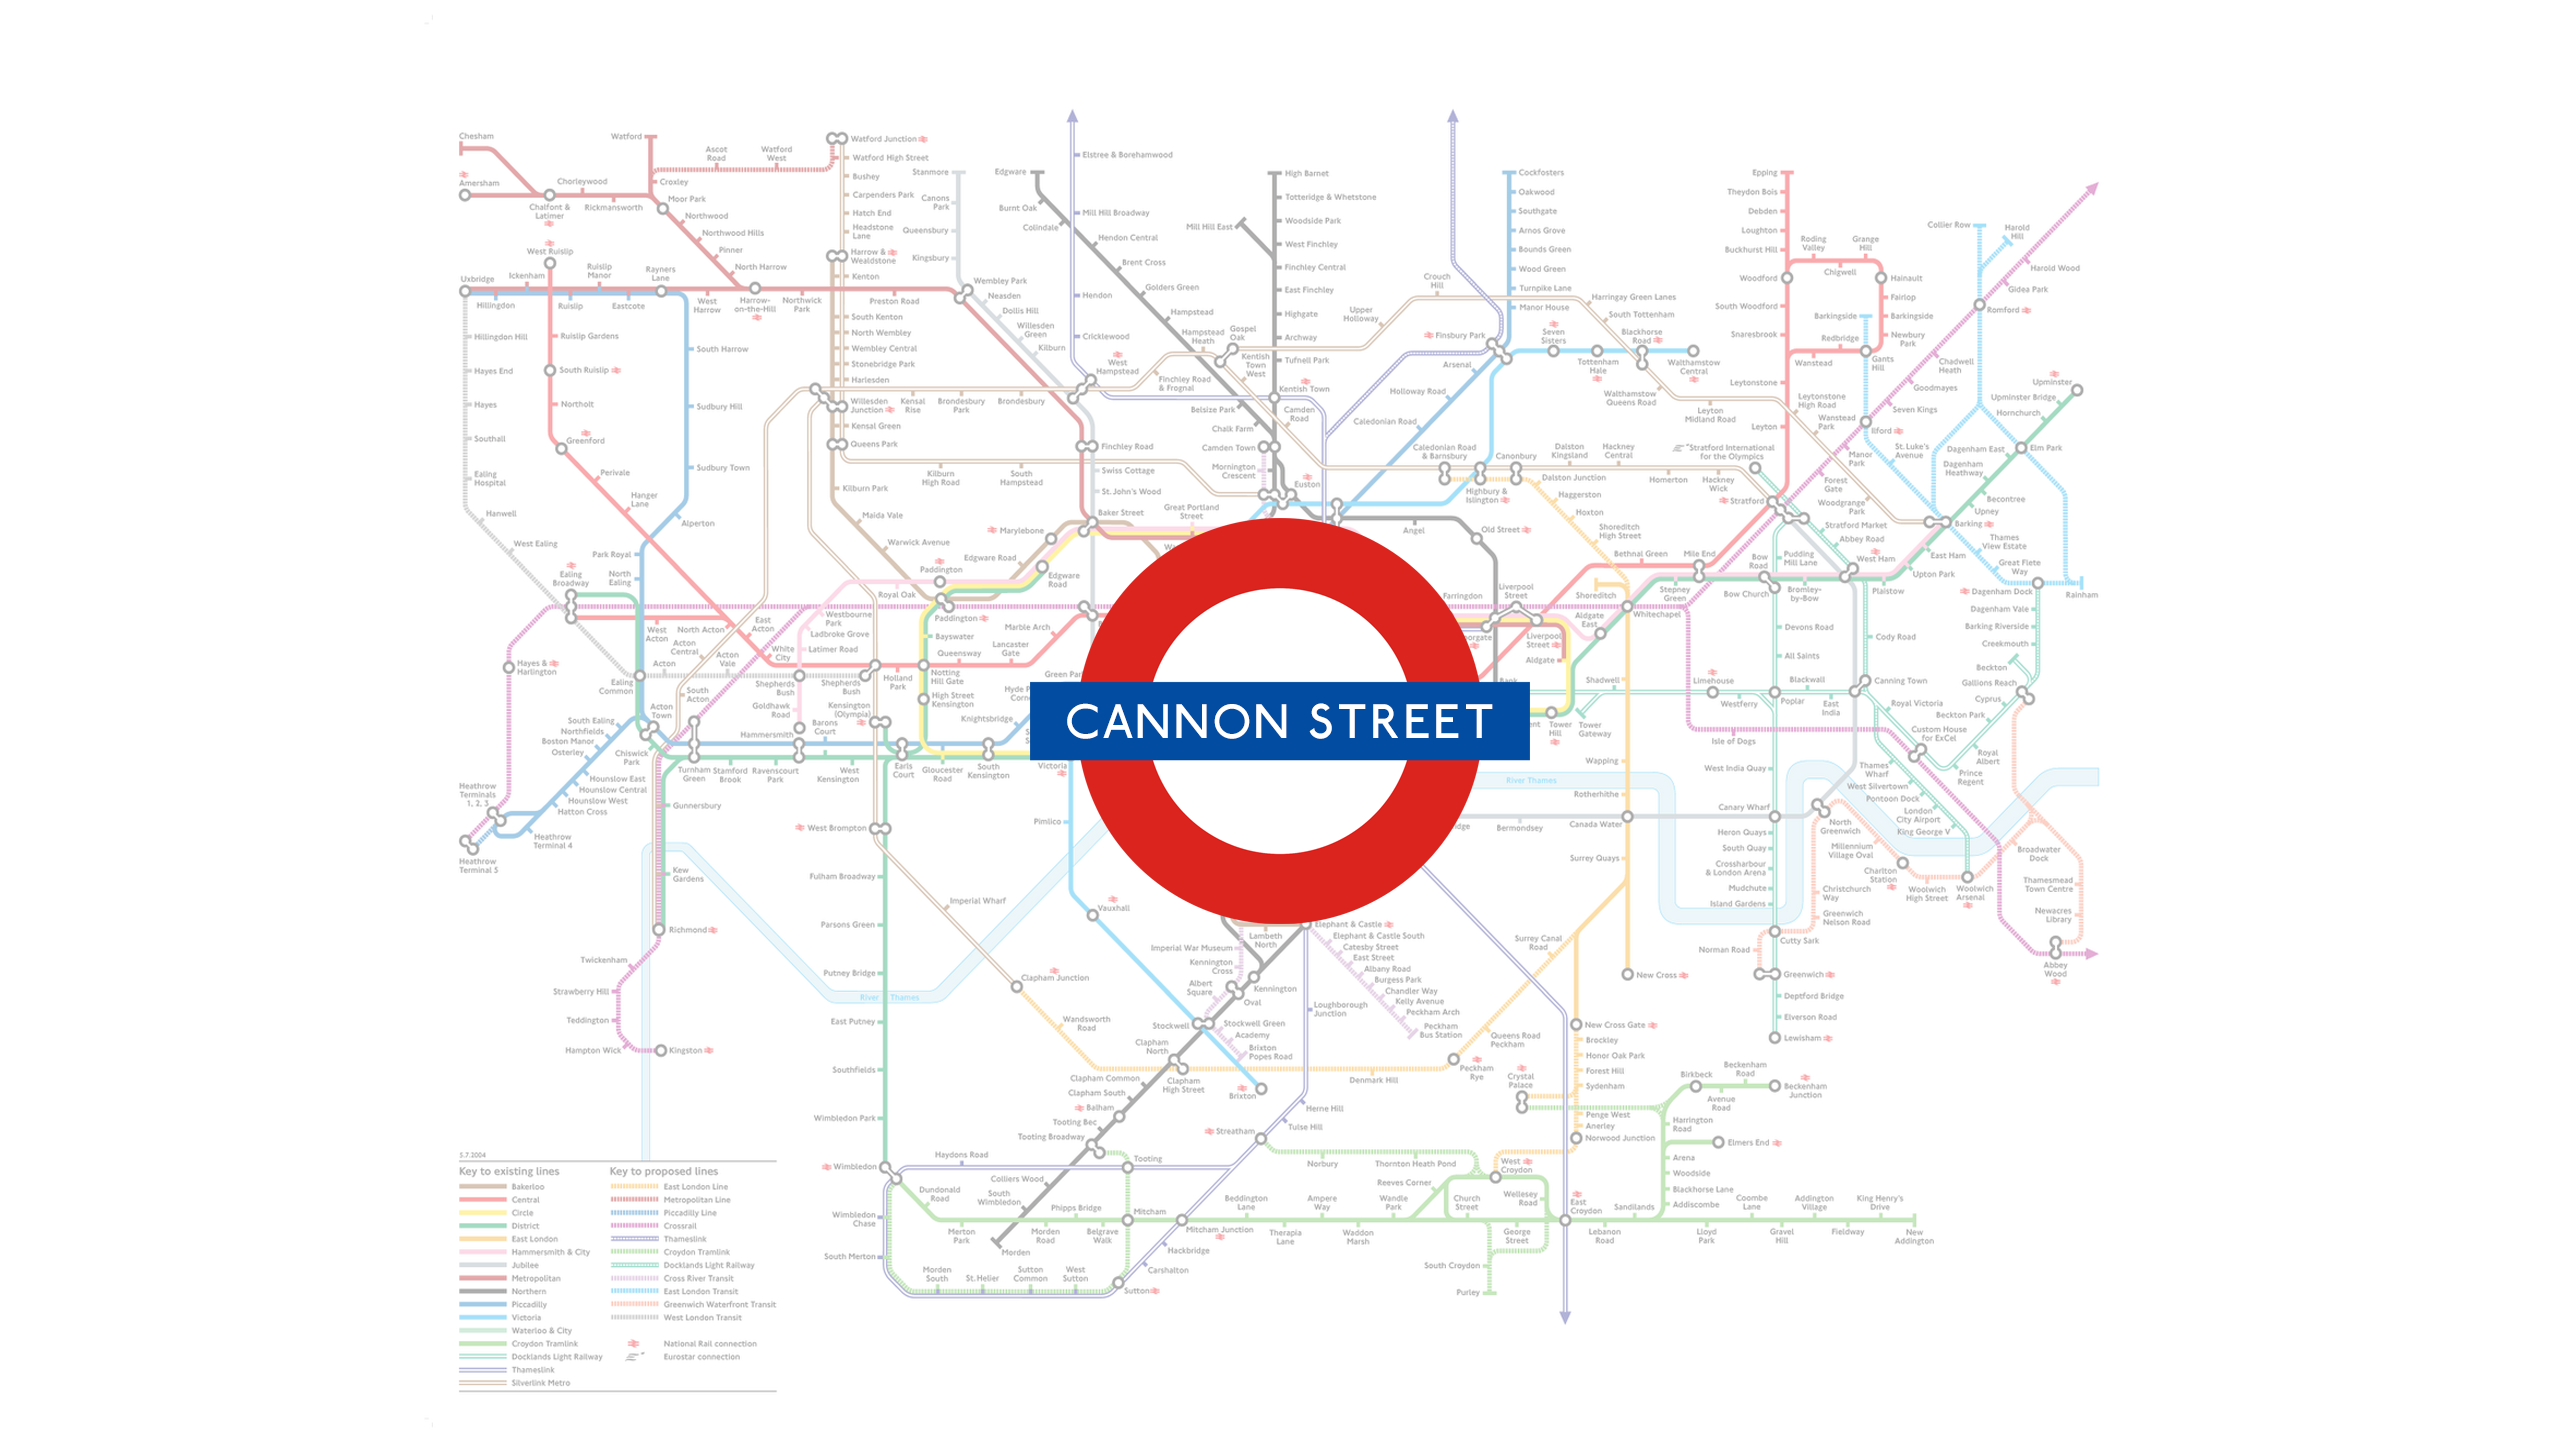 Cannon Street (Map)